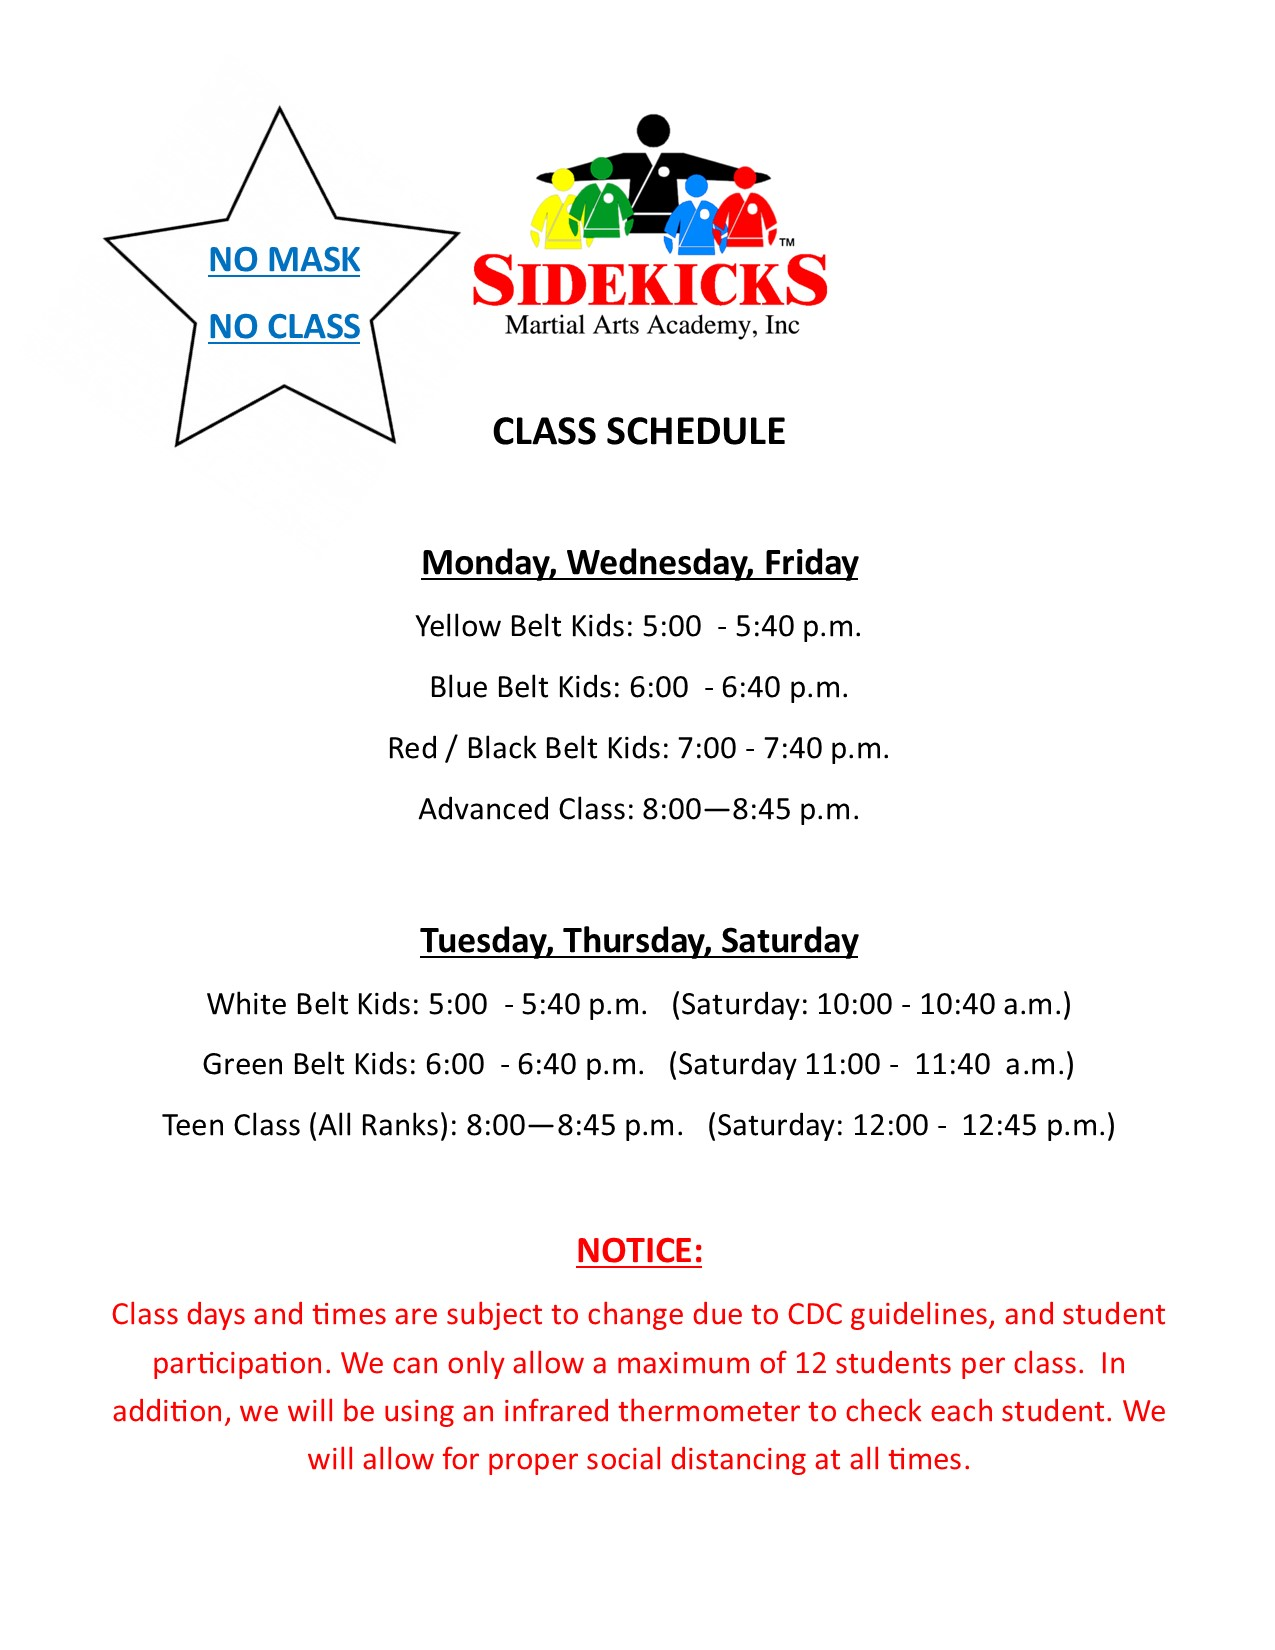 Sidekicks Class Schedule July 2020